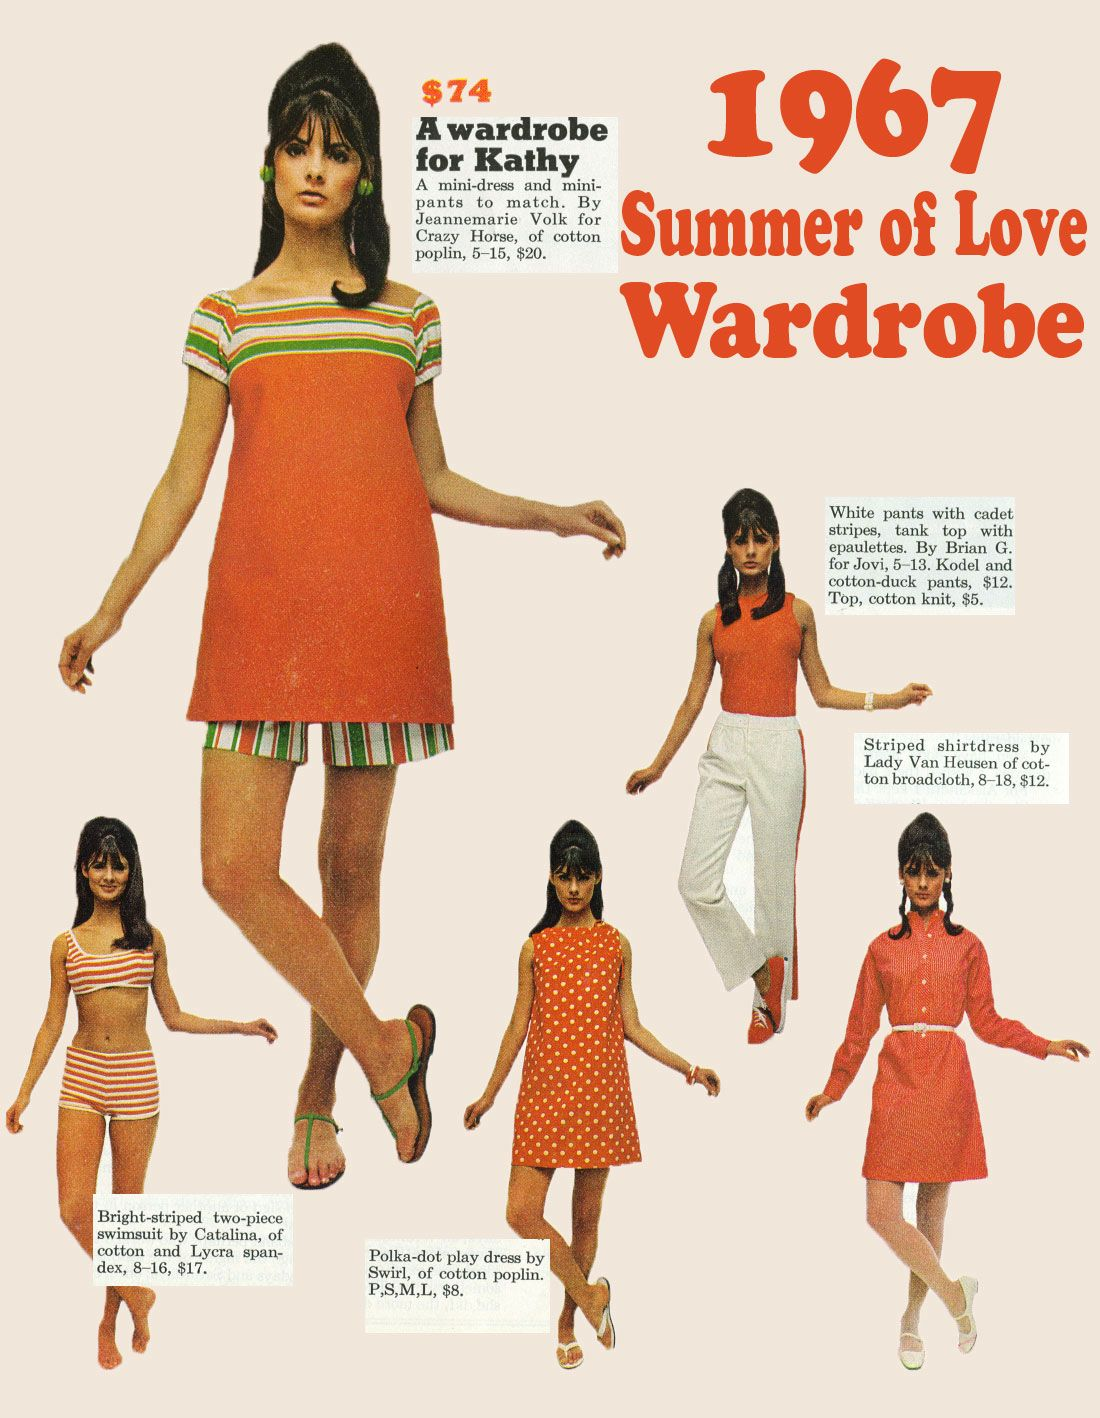 The 1960s Fashion Was The Main Theme Being Rebelling Against Traditional Norms 60 39 S